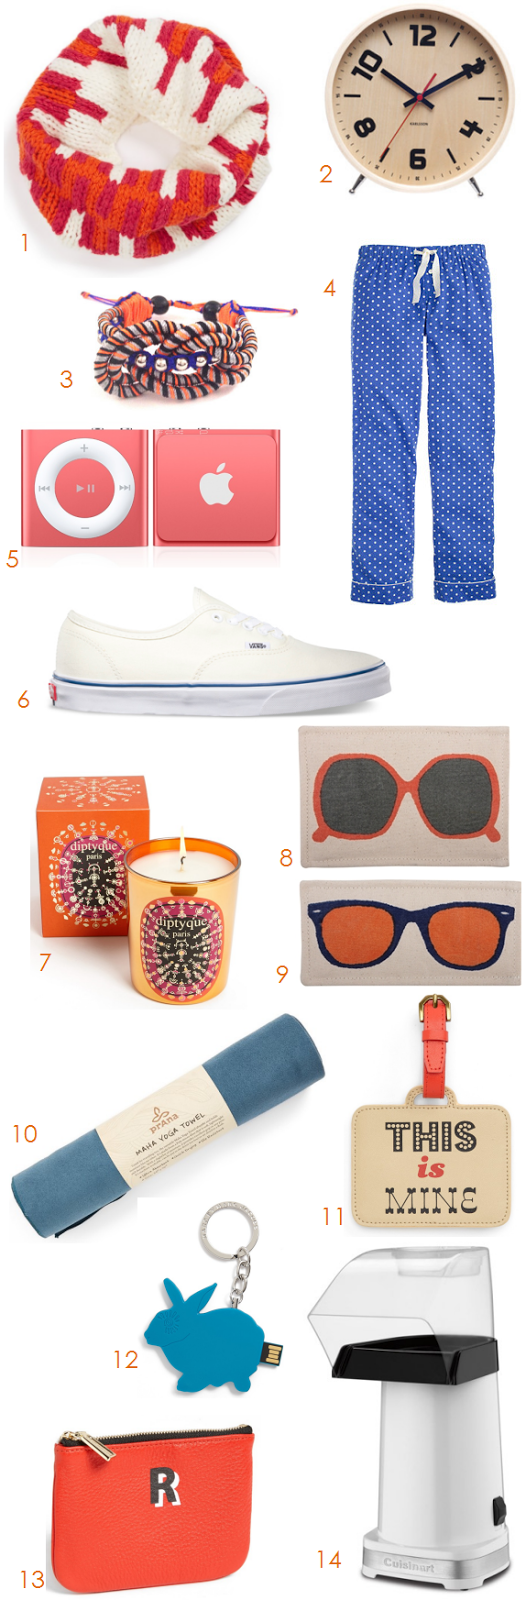 Gift Guide: $50 and under | Ridgely's Radar